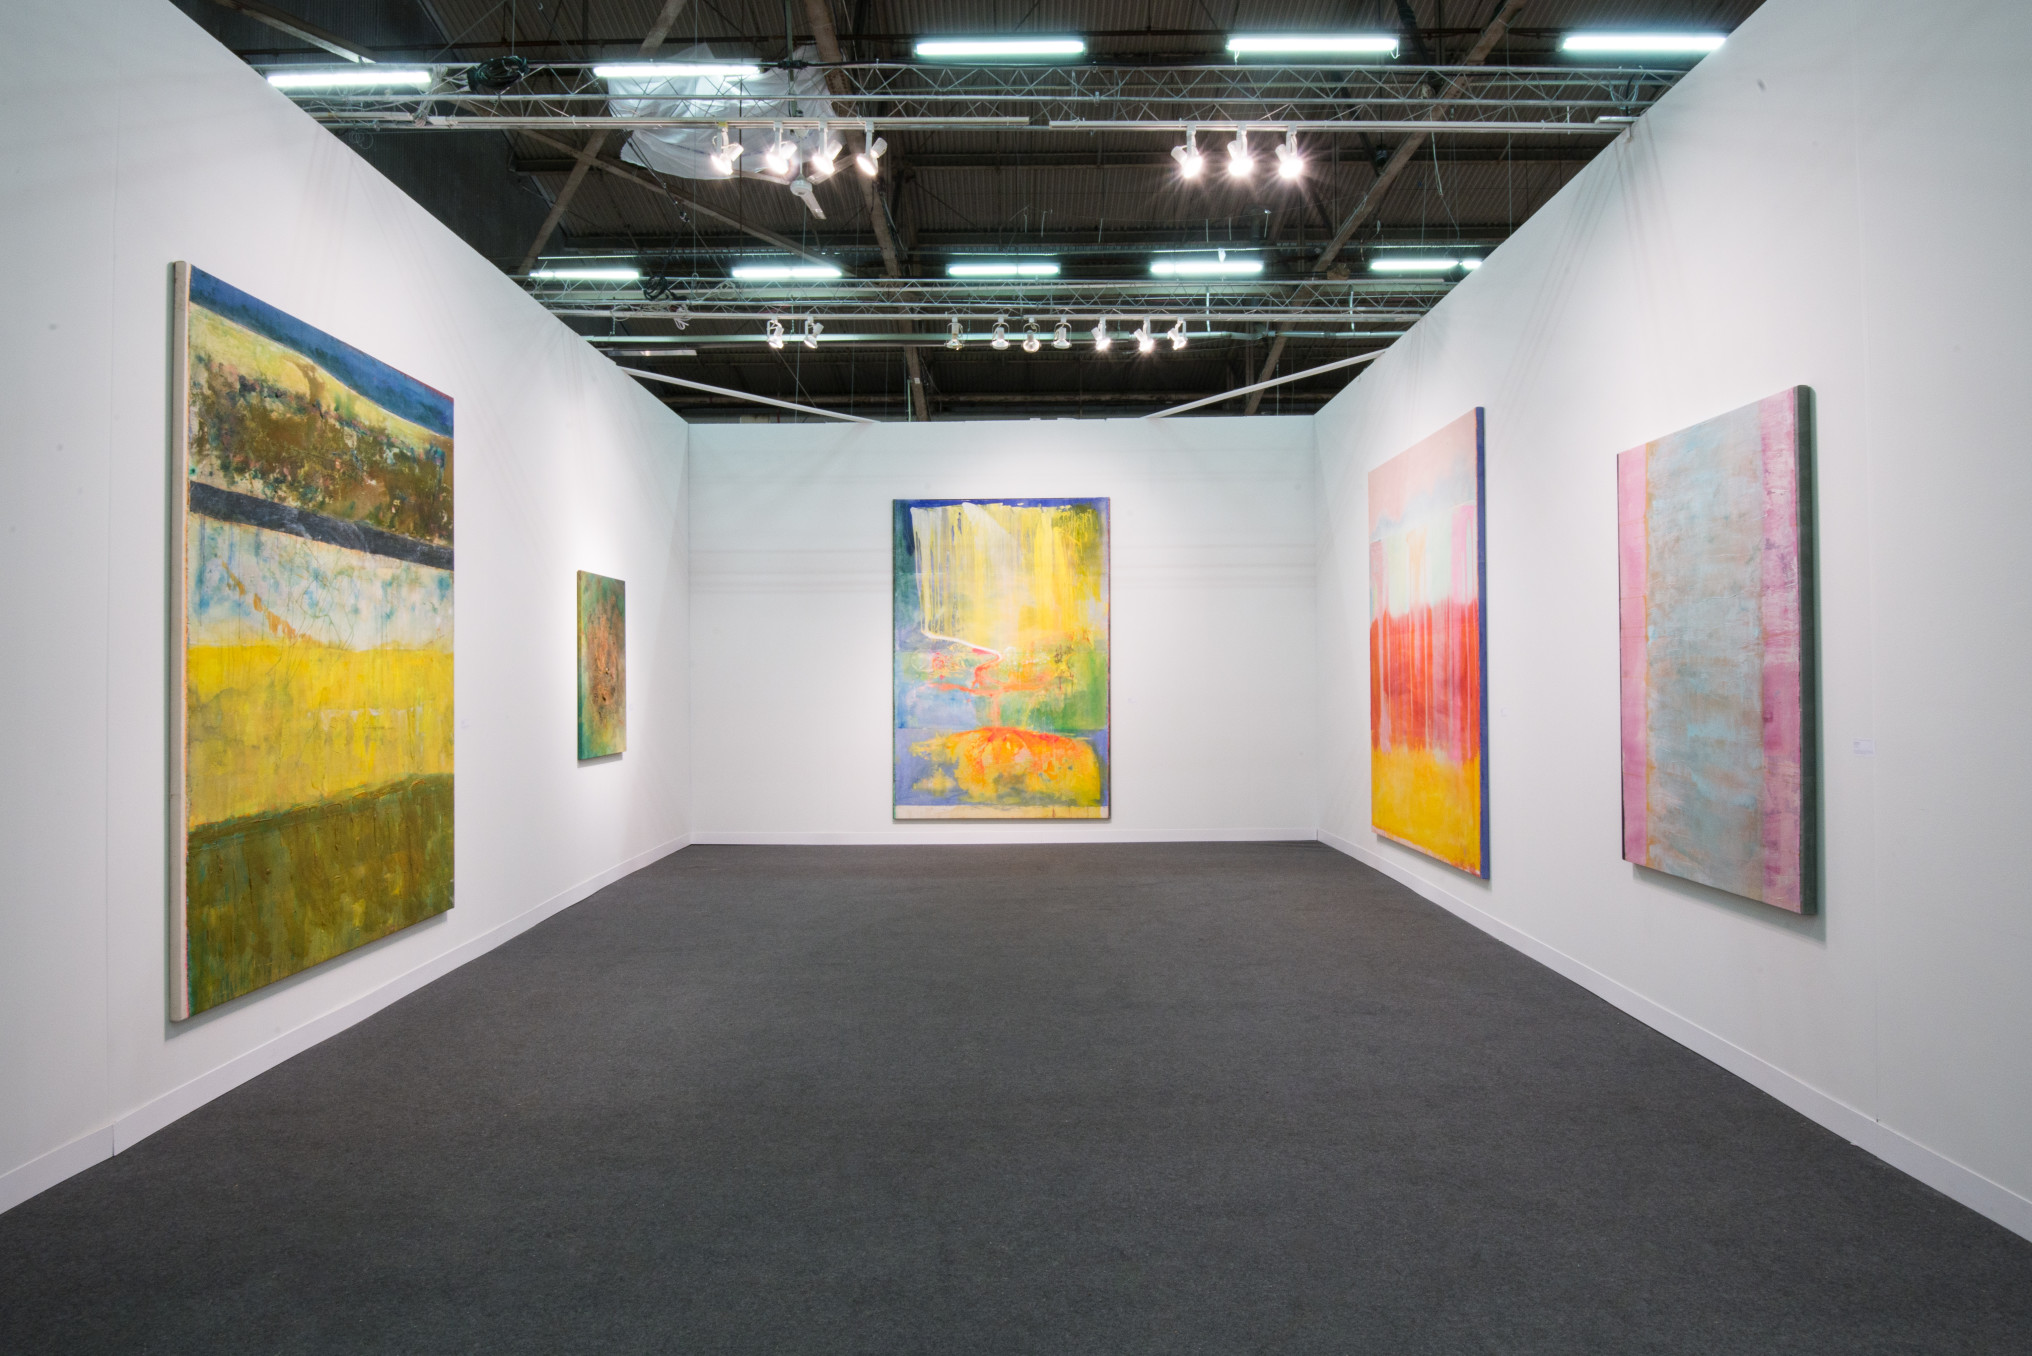 Frank Bowling, Installation view, Hales Gallery at The Armory Show 2016 | Pier 94 Booth 743, New York, 3 - 6 March 2016